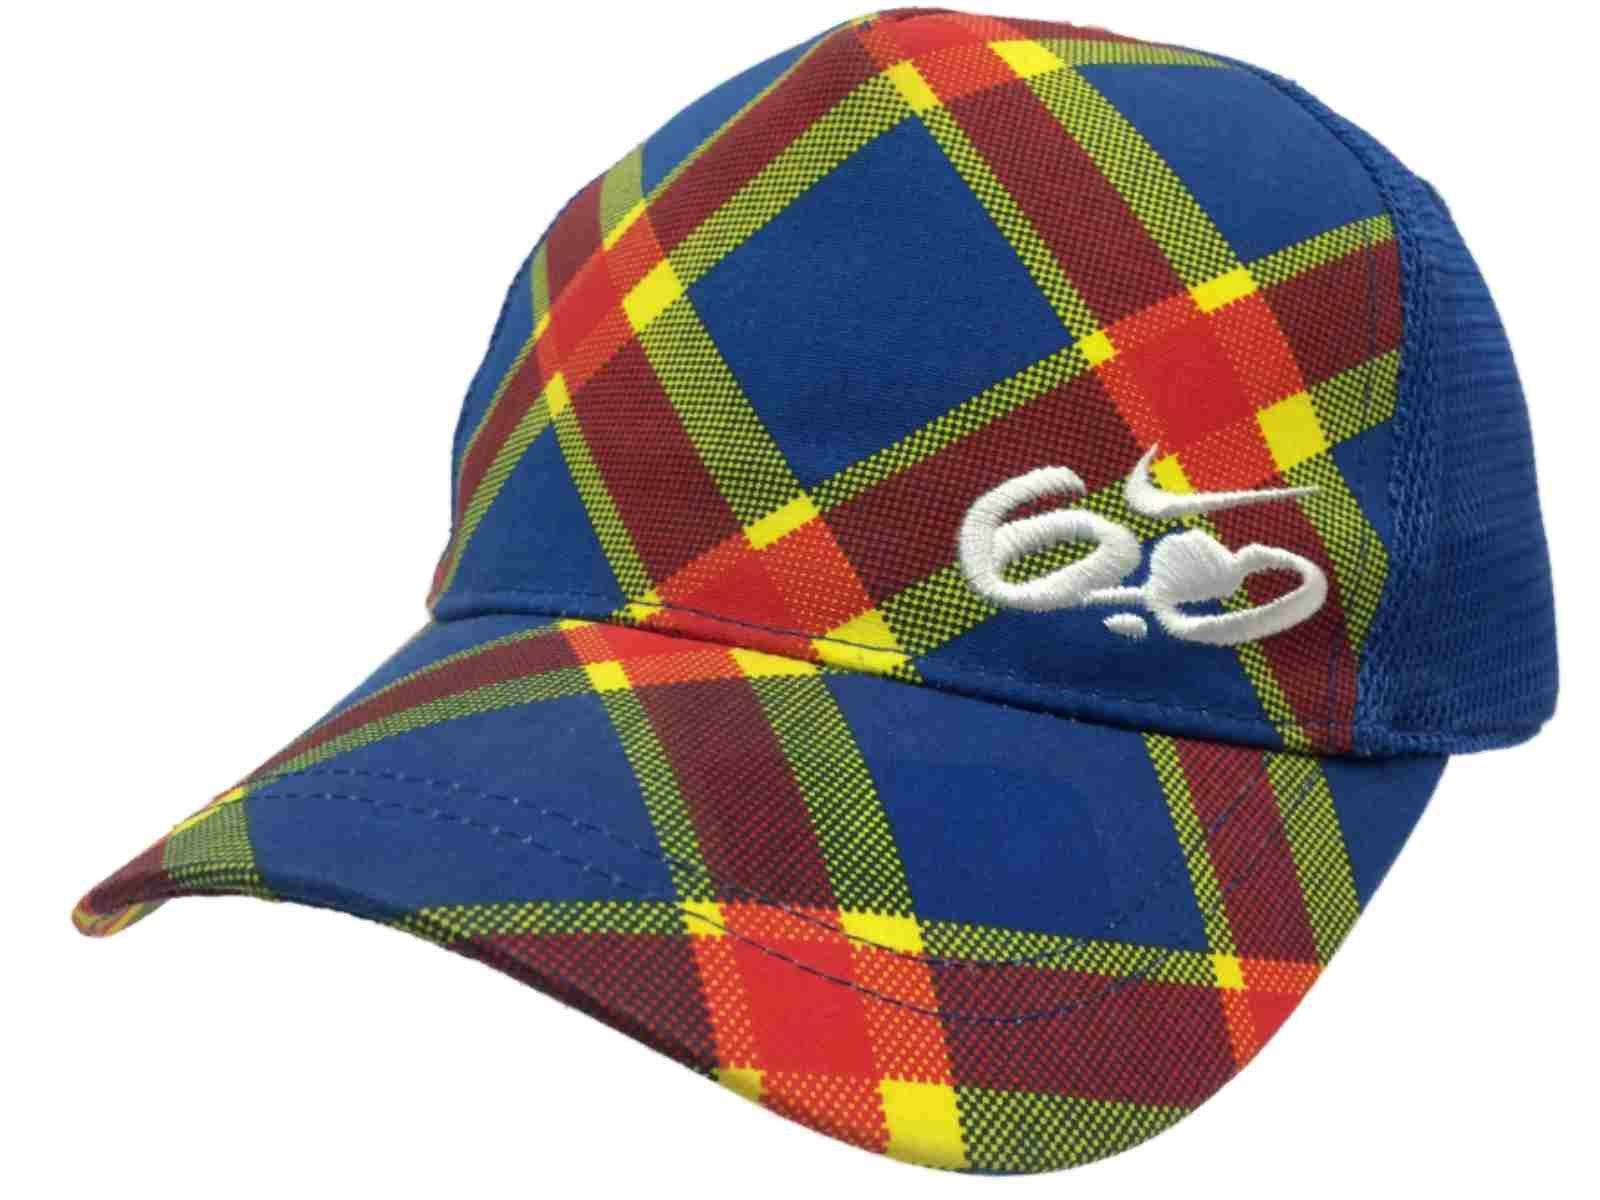 14aae727d98 ... czech nike 6.0 youth red yellow blue plaid mesh adjustable hat cap 8 20  60fea 67fdd